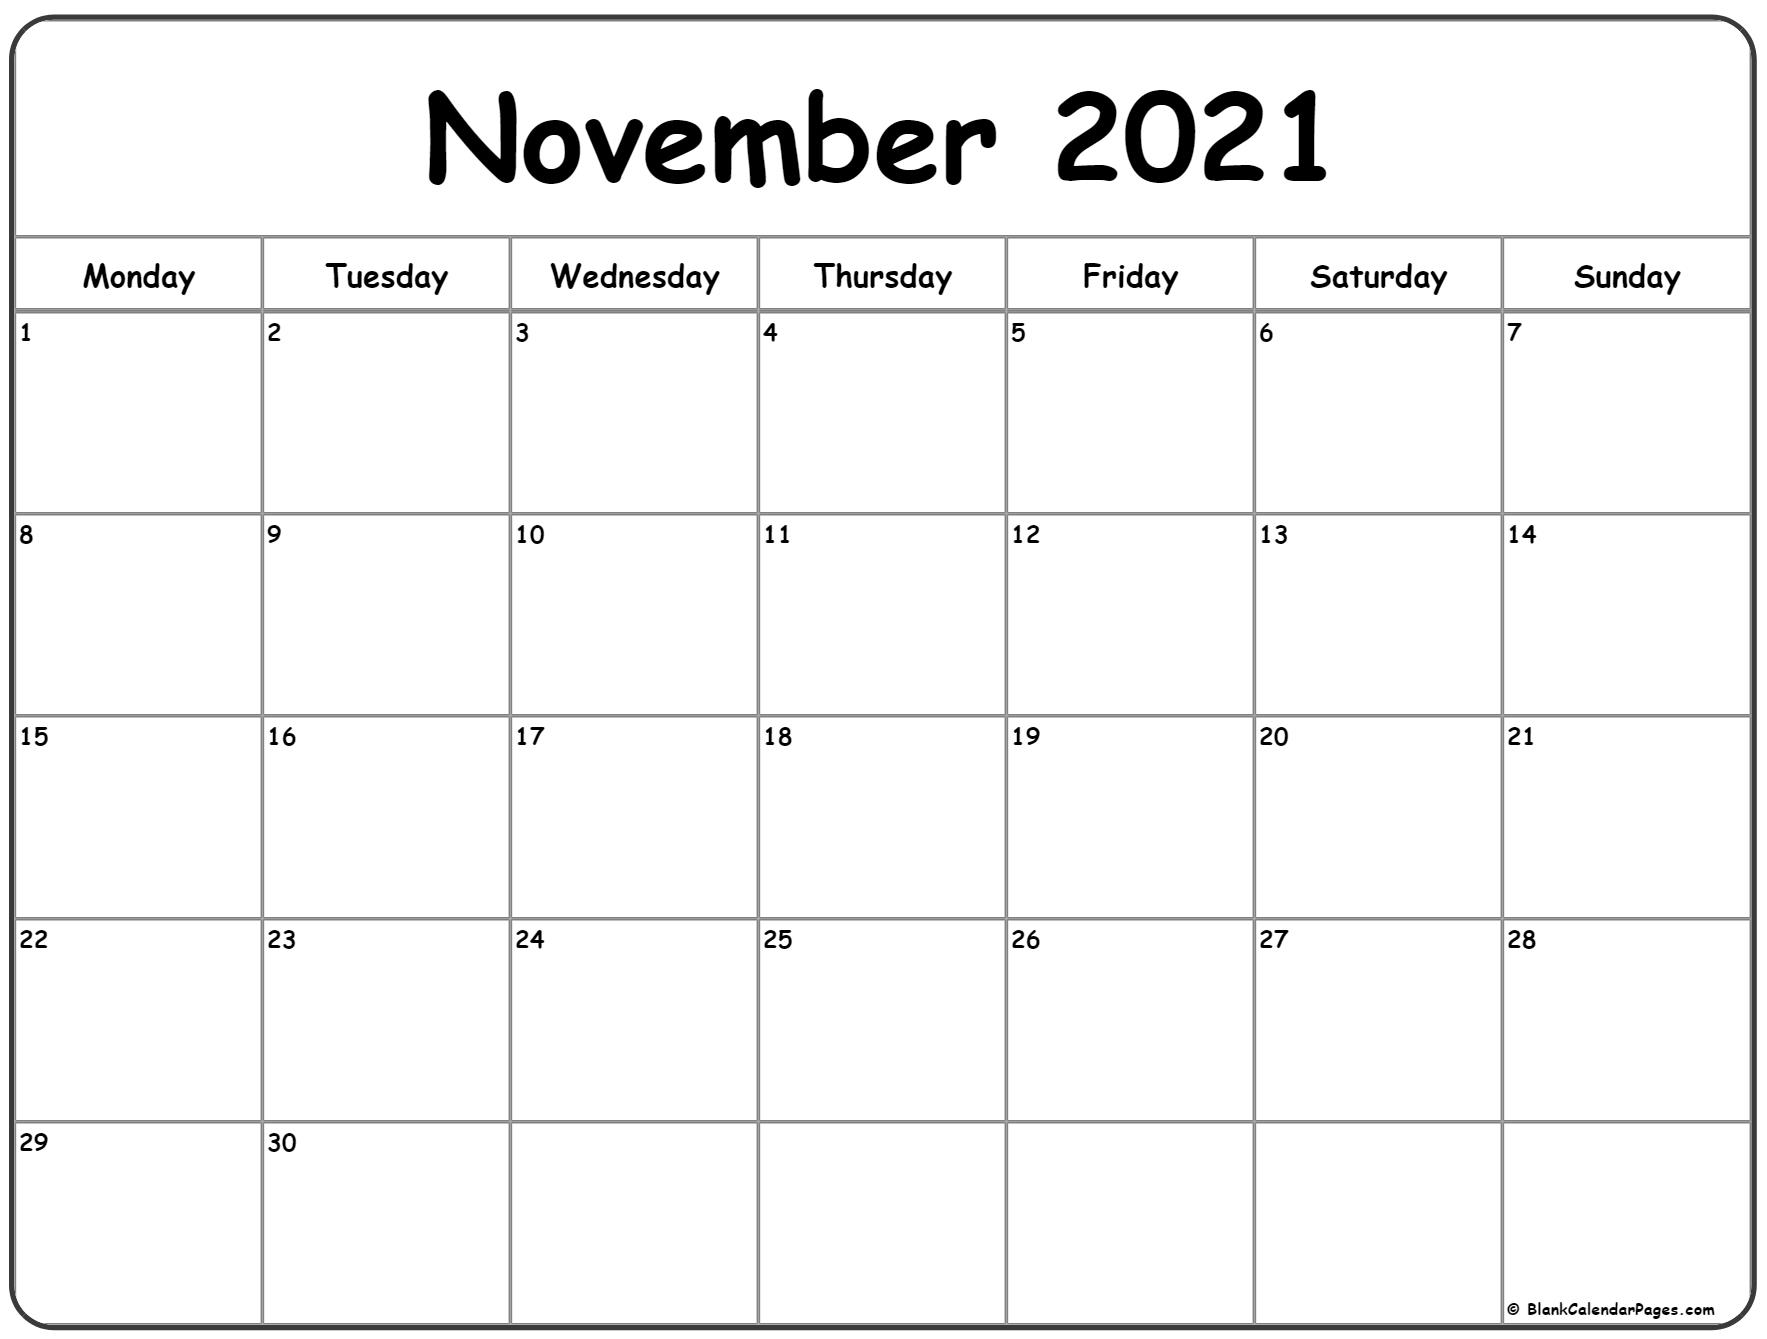 November 2021 Monday calendar. Monday to Sunday